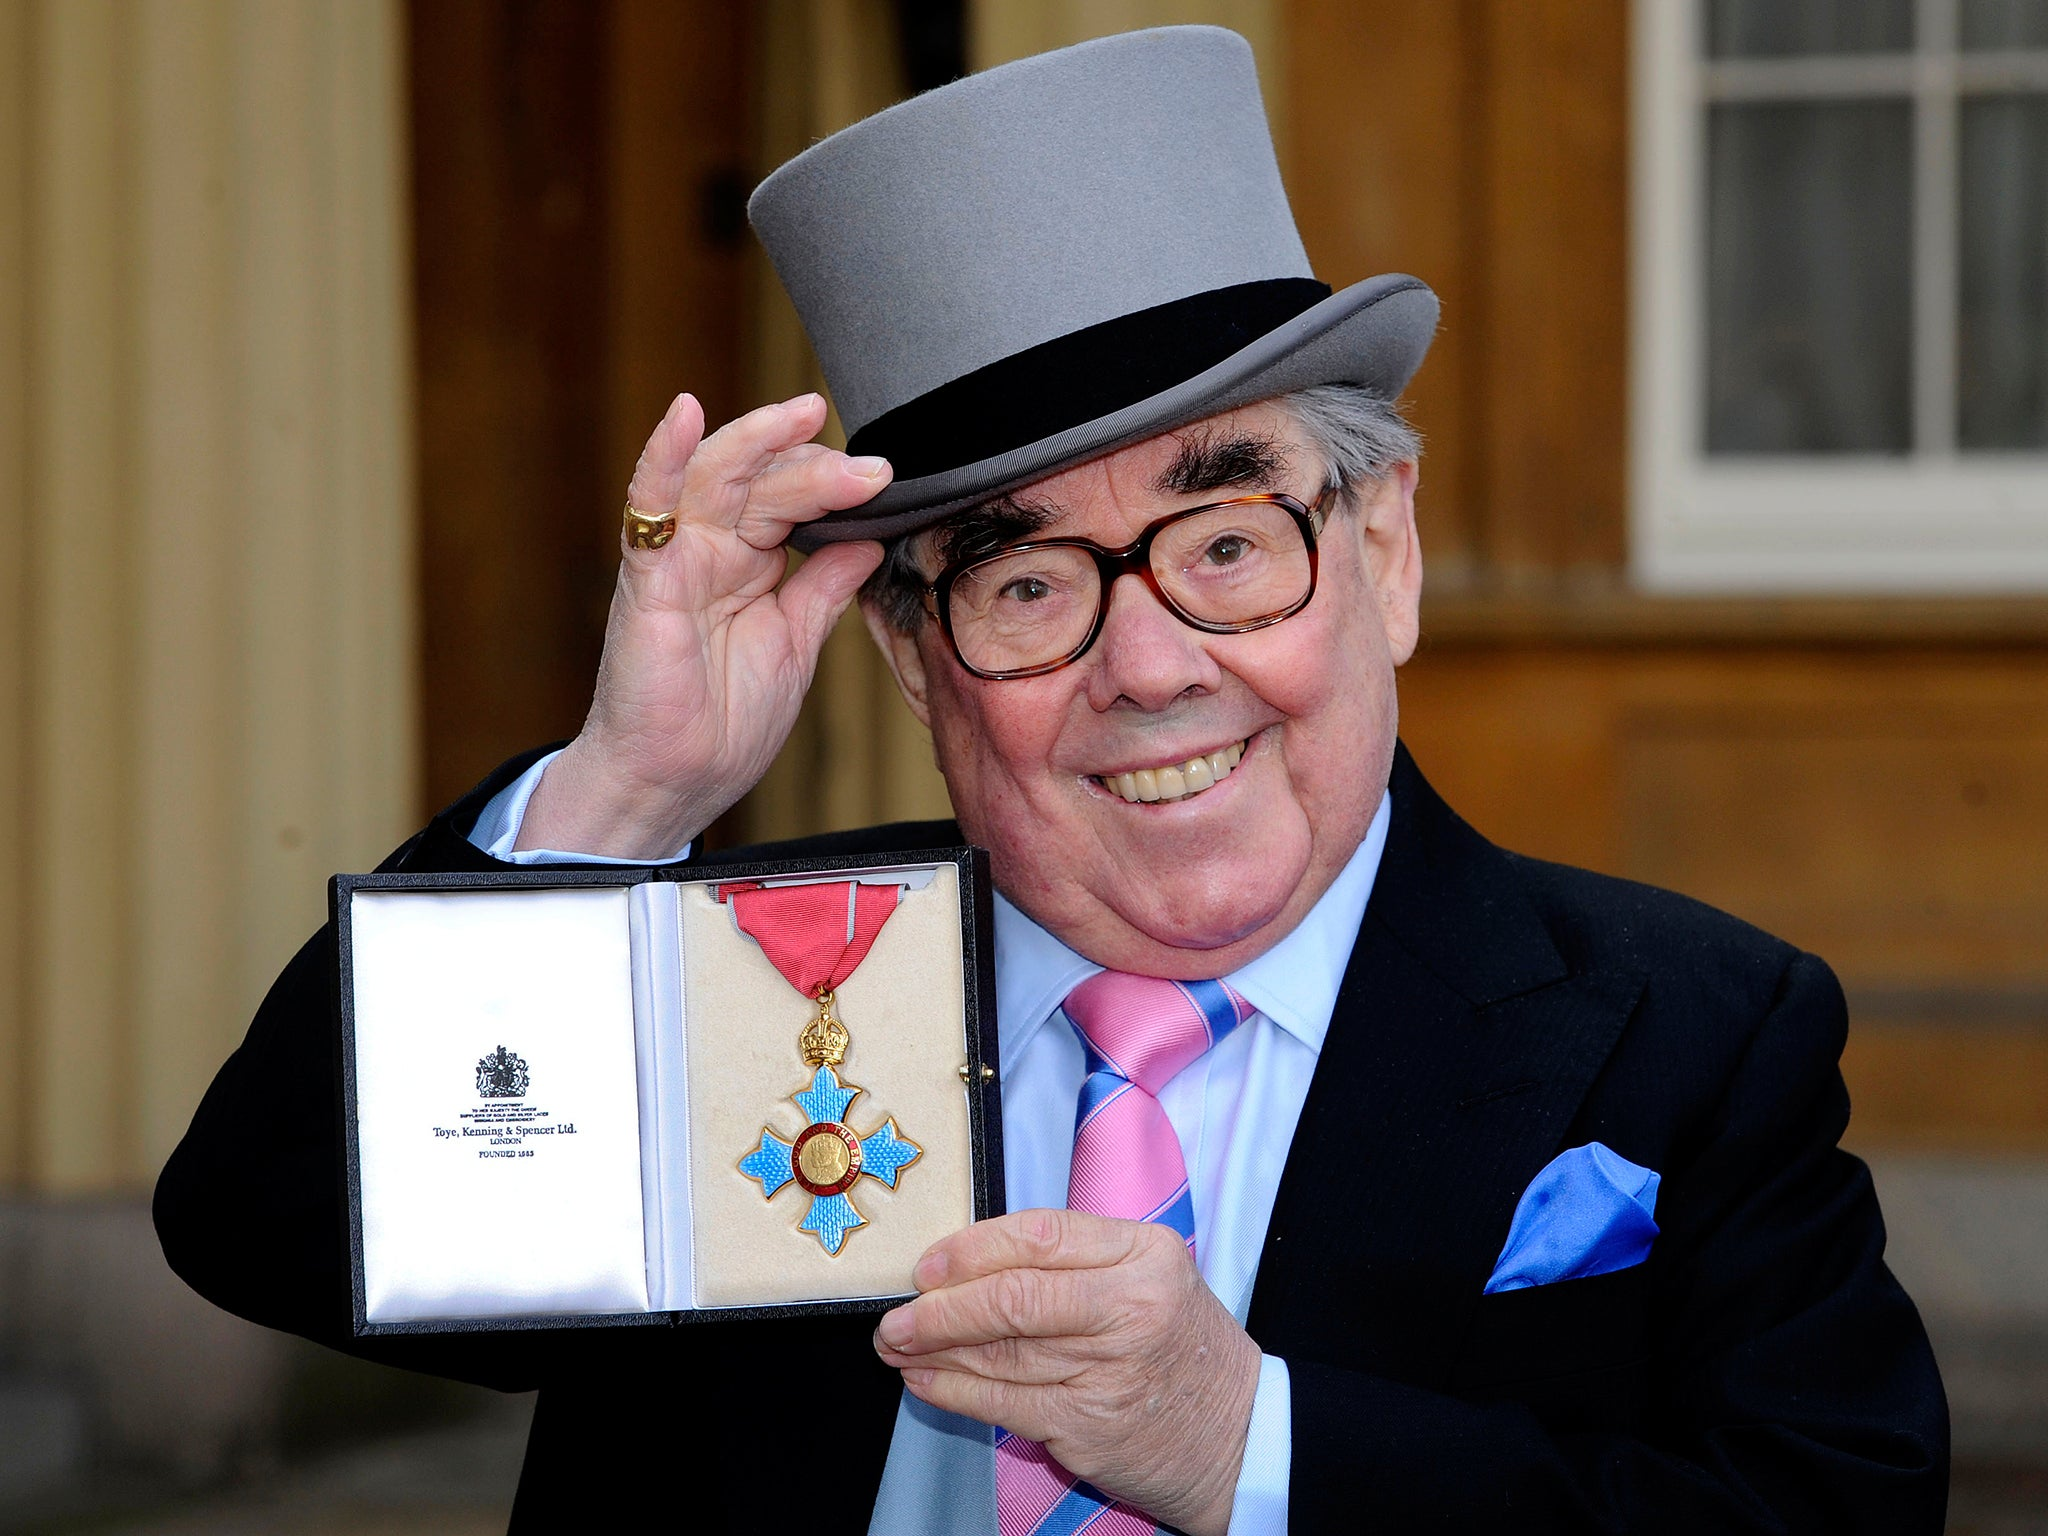 Ronnie Corbett dead: Ricky Gervais leads comedians paying tribute to The  Two Ronnies star | The Independent | The Independent